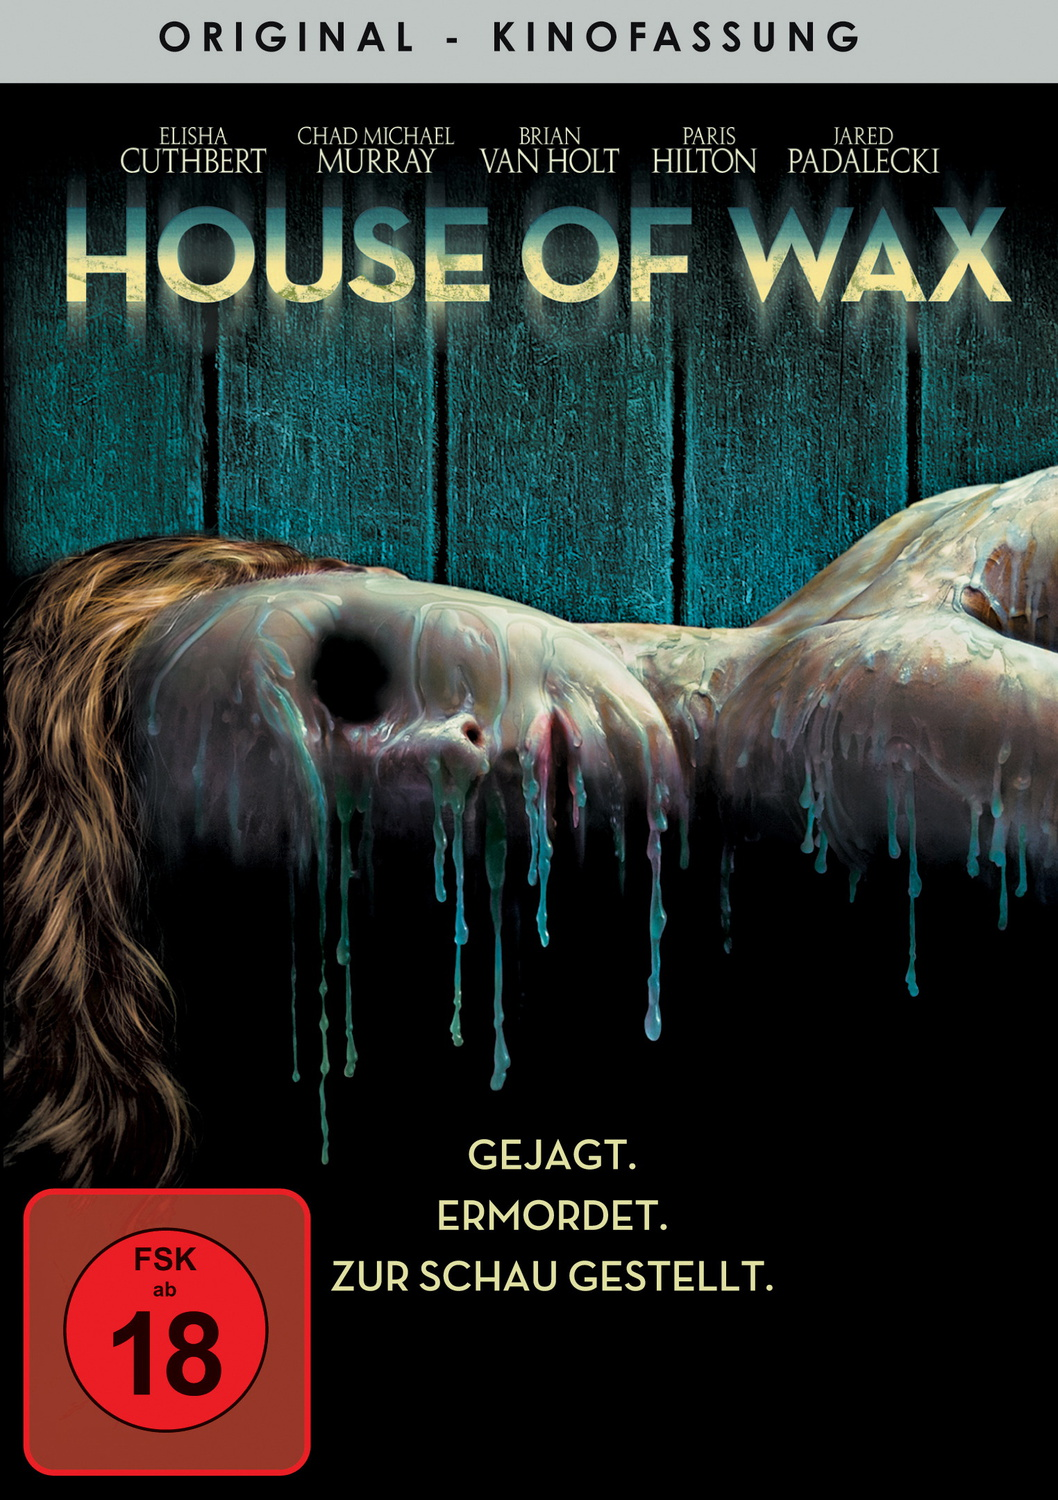 House of Wax - Paris Hilton